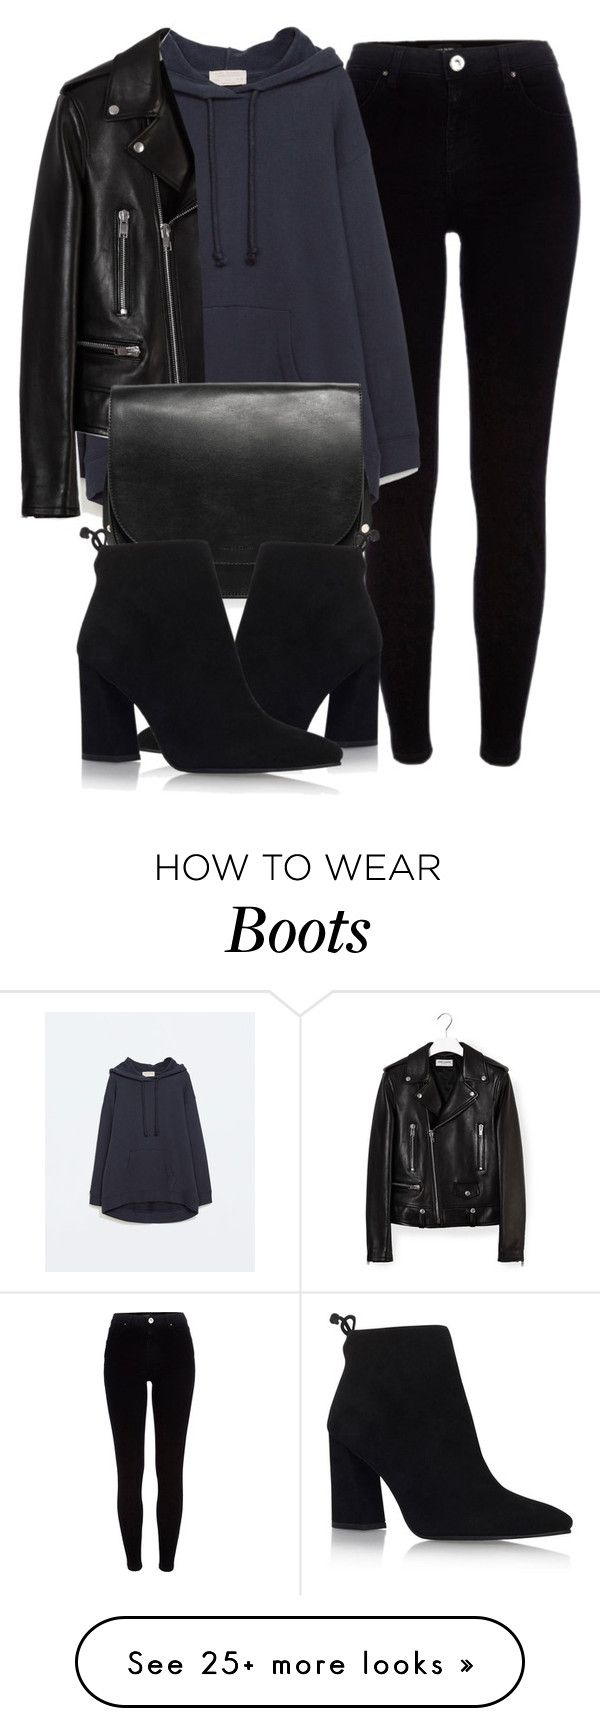 """Untitled #5379"" by laurenmboot on Polyvore featuring River Island, Zara, Yves Saint Laurent, MANGO and Stuart Weitzman"